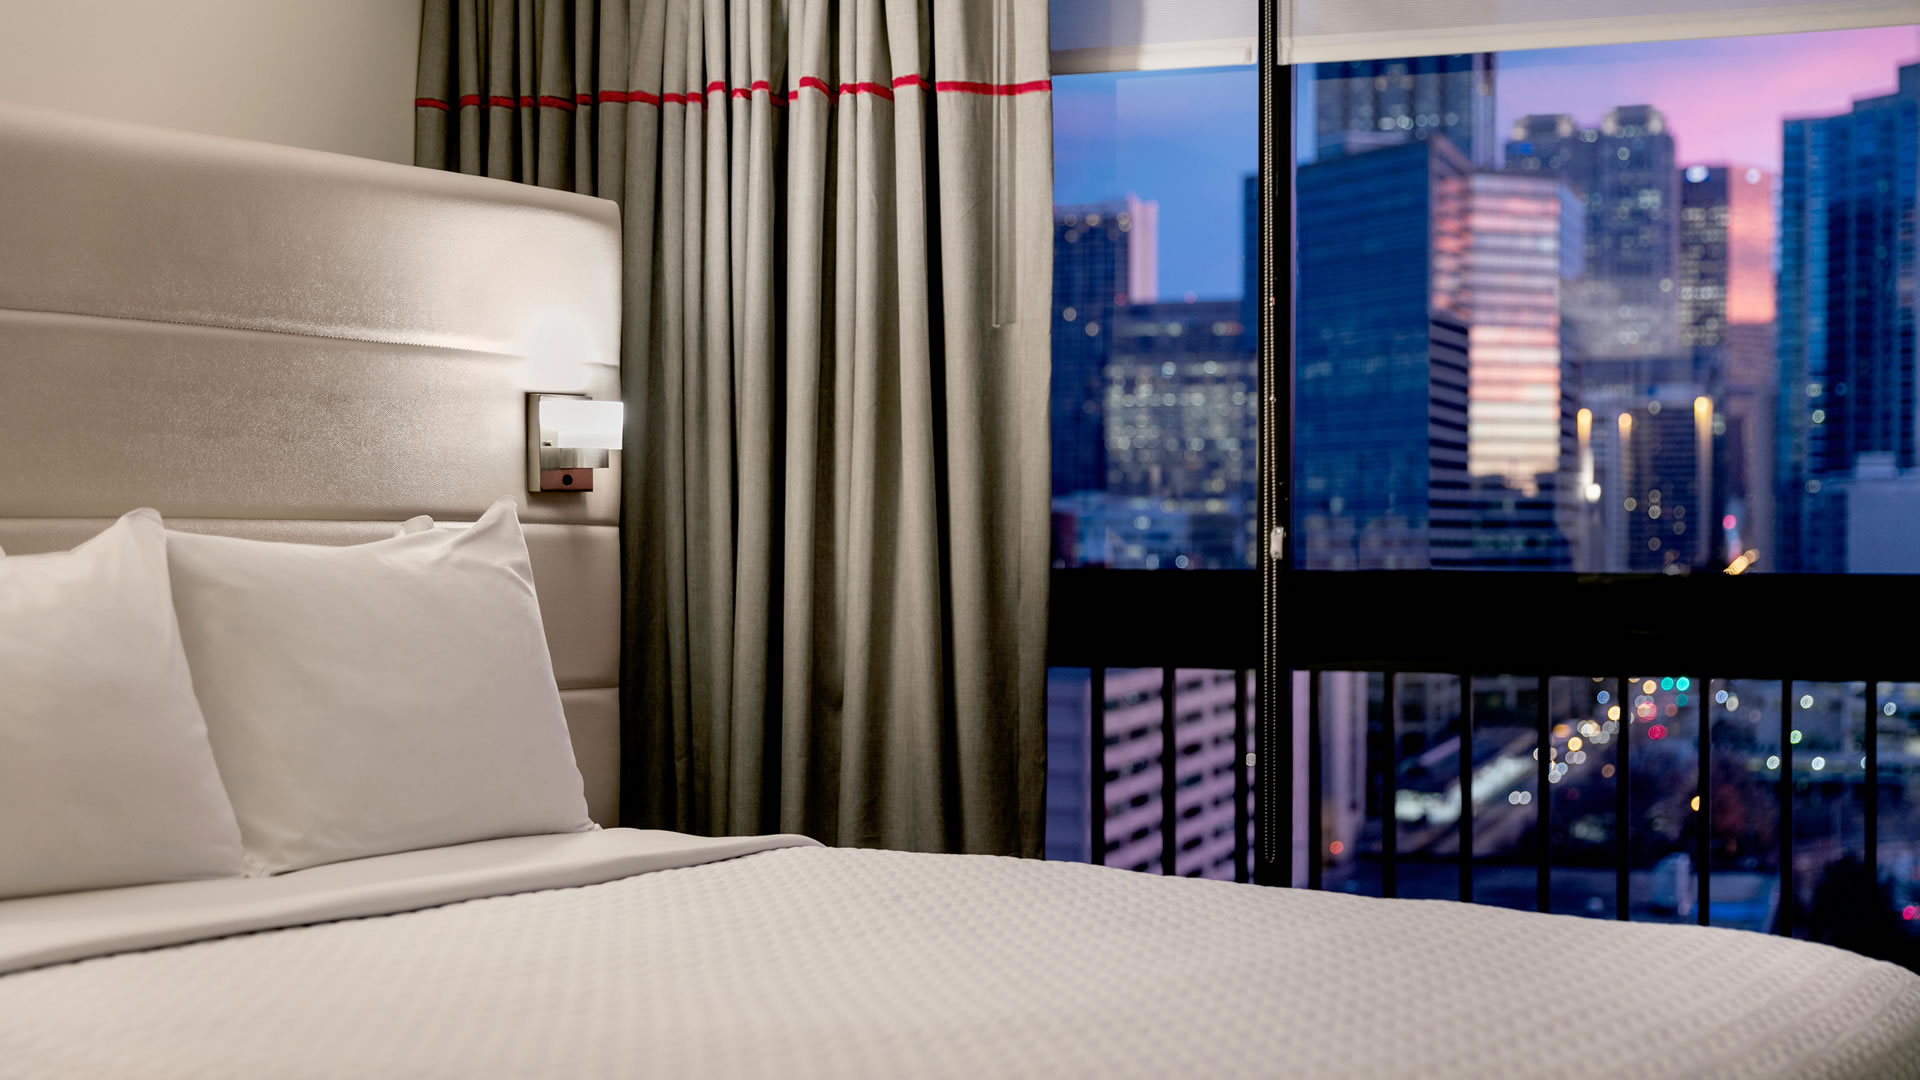 Close up of bed and pillows at the Crowne Plaza Atlanta Midtown with the city skyline out the window in the background.